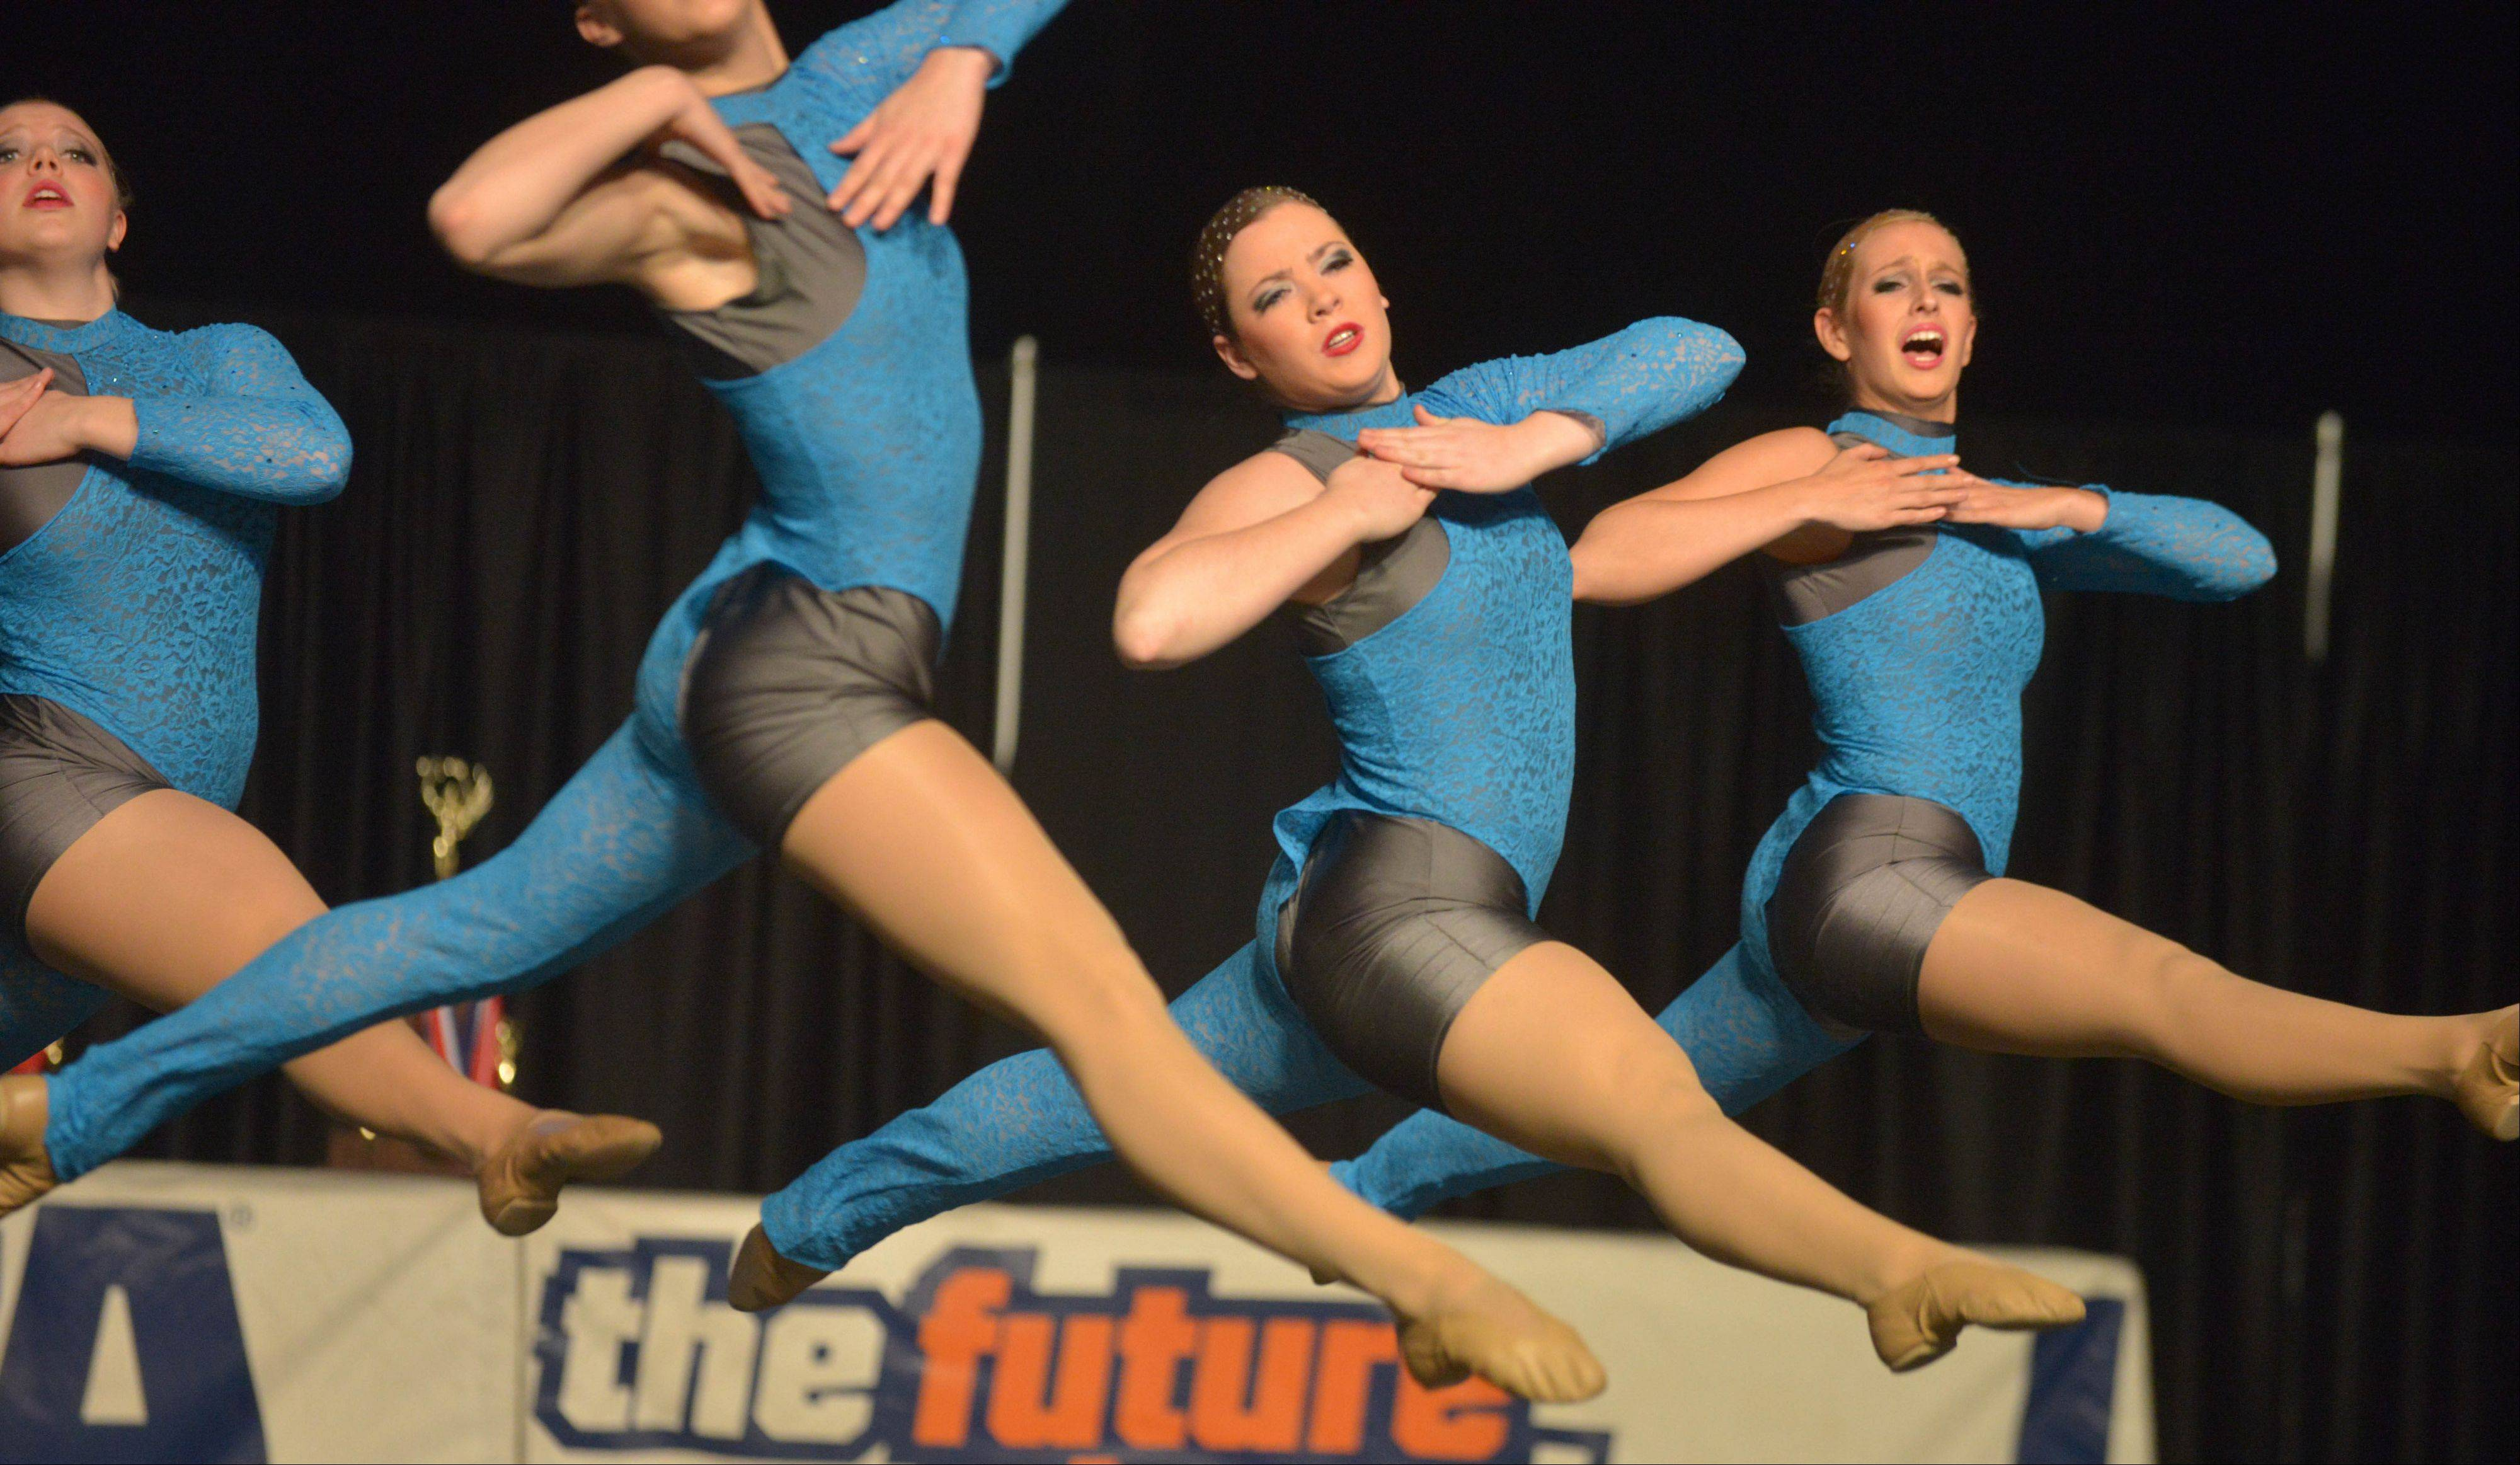 Barrington High School took part in the IHSA Dance State Final at U.S. Cellular Coliseum in Bloomington Saturday. 90 teams vied for state champion at this event.